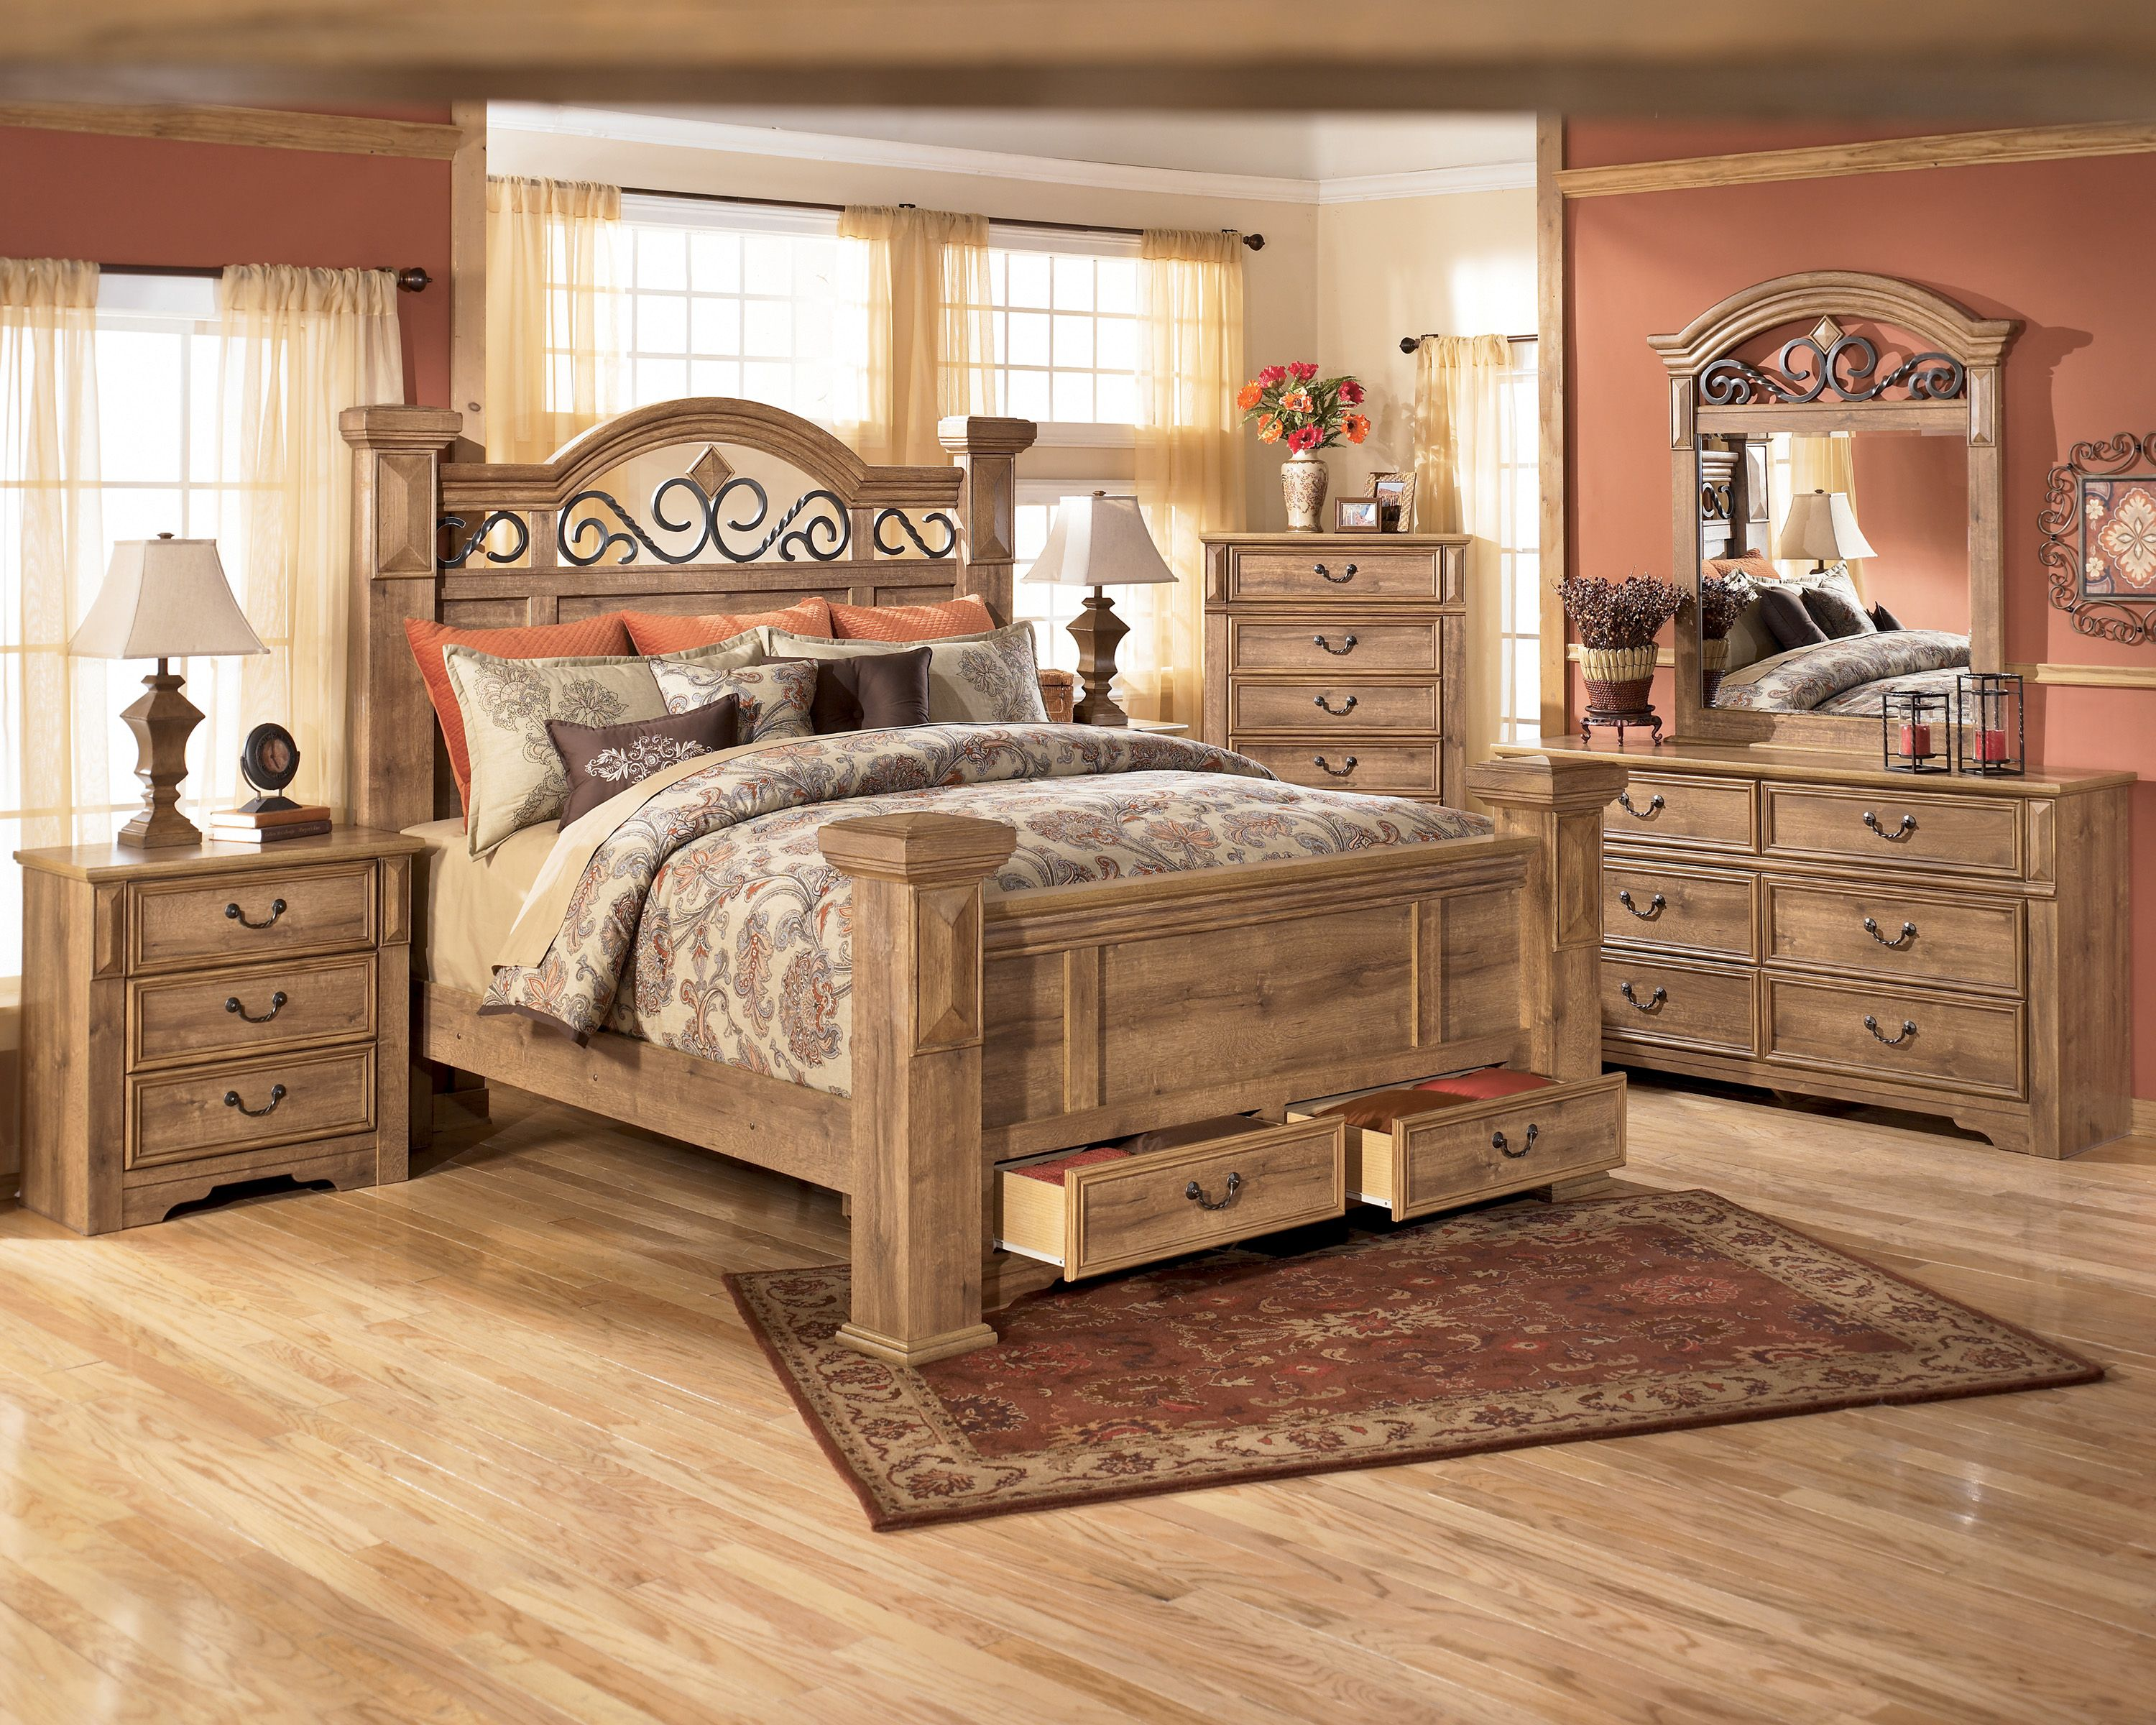 kane products room collections bed blanco it t you furniture set s bedrooms less won for find cordoba queen bedroom